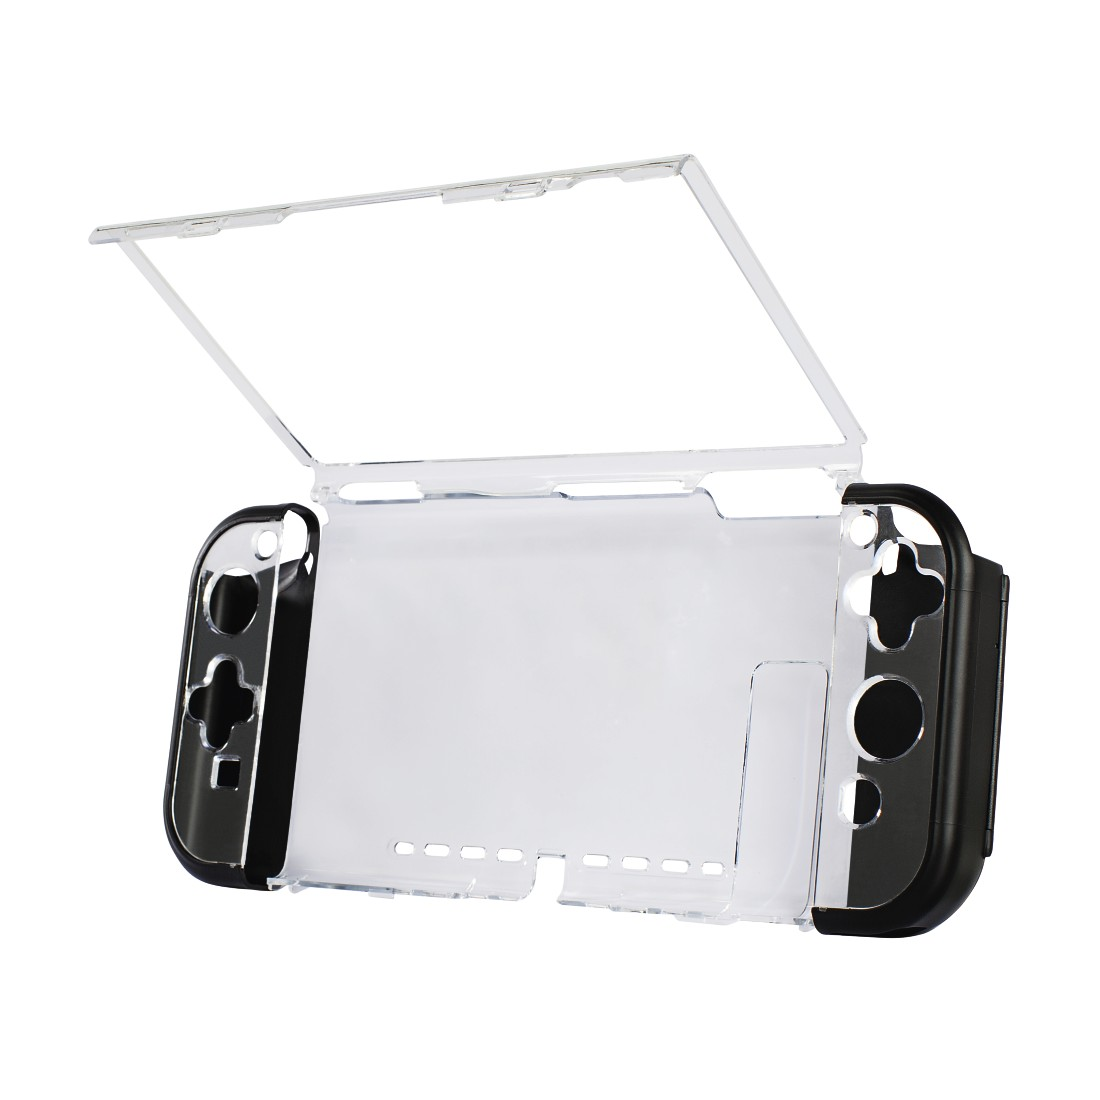 awx2 High-Res Appliance 2 - Hama, Hardcover pentru Nintendo Switch, 3 buc., transparent